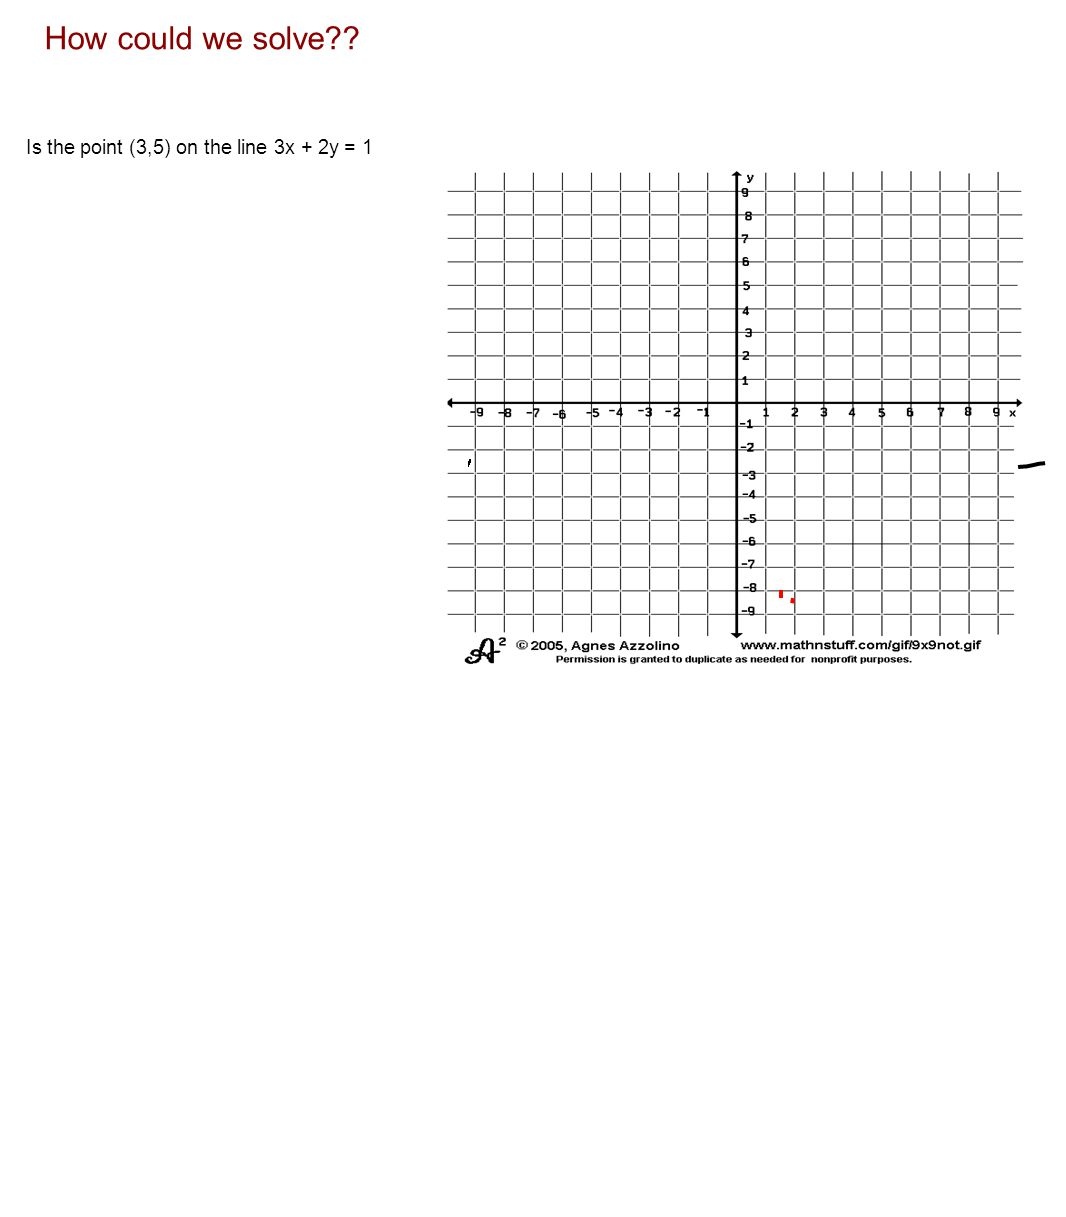 How could we solve Is the point (3,5) on the line 3x + 2y = 1